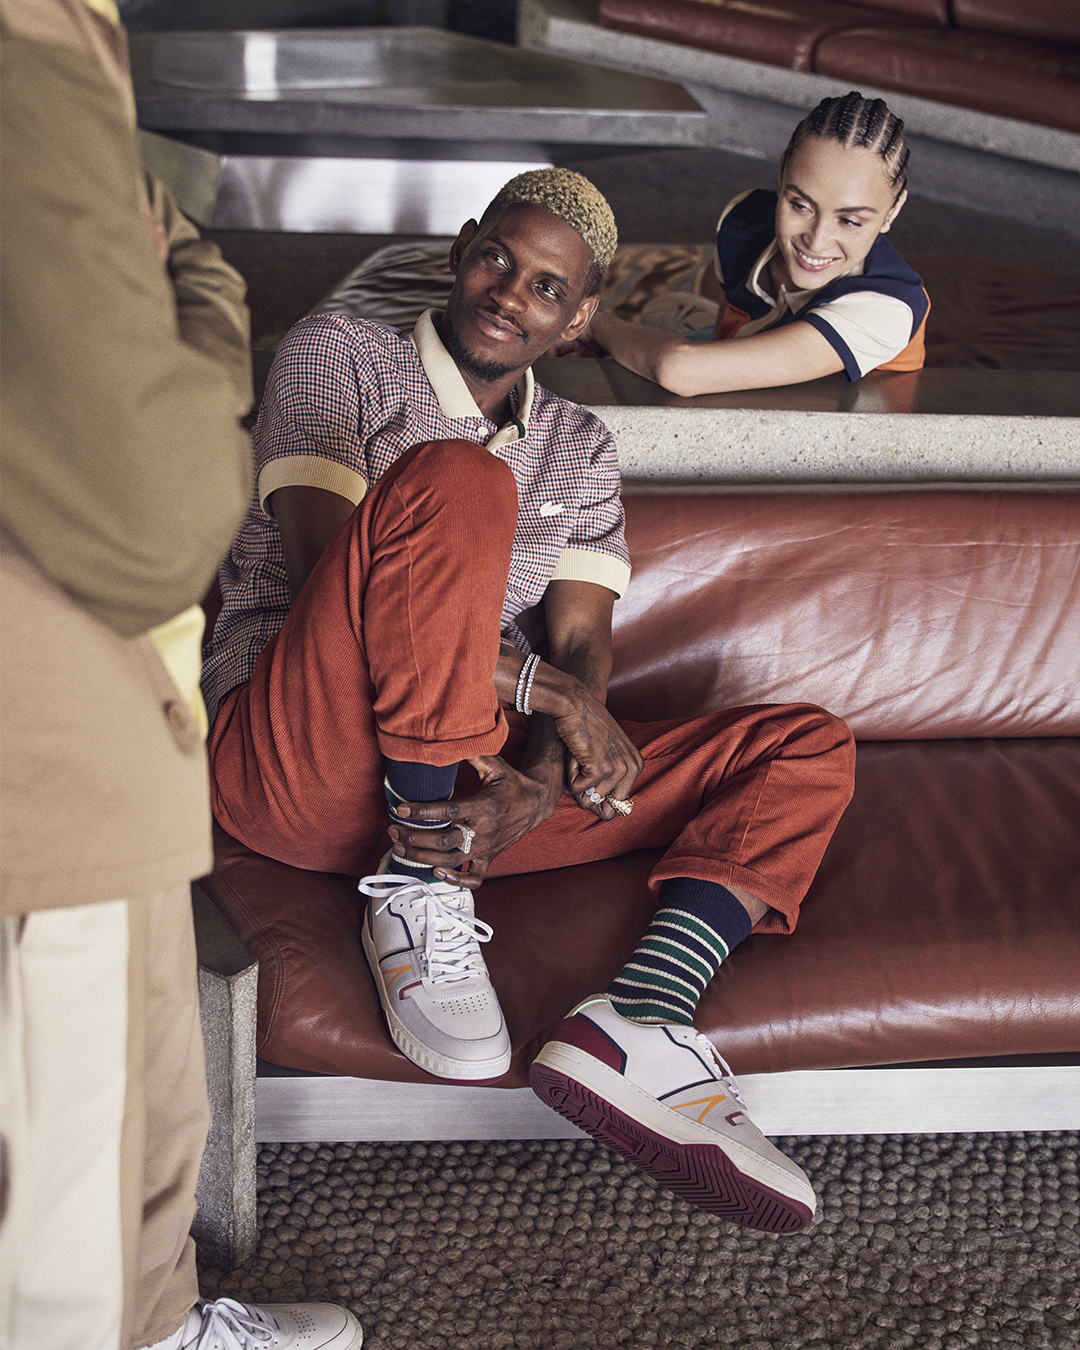 lacoste L001 Play Collective campaign